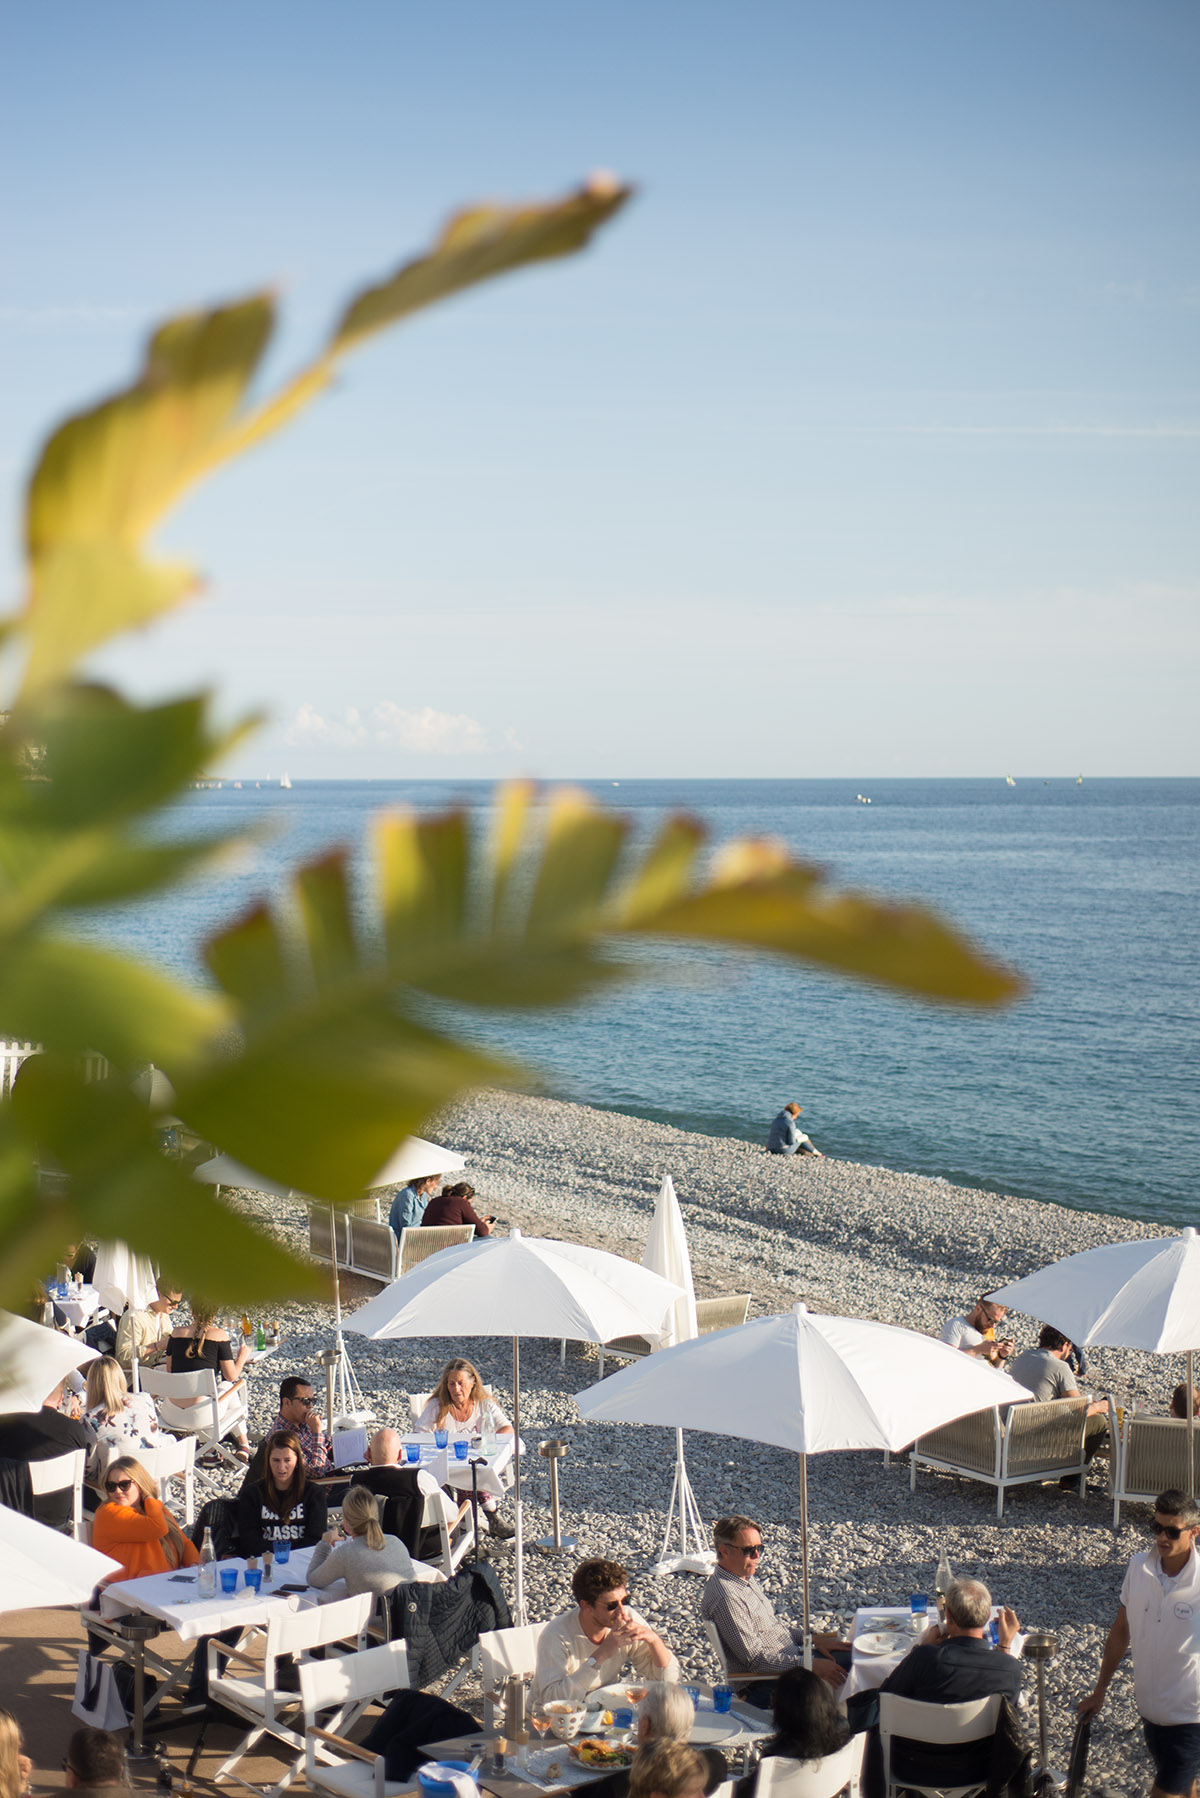 One of my favorite lunches was on the beach at Le Galet in Nice. A version of the eggplant pizza I had there (with rosé!) is going in the book.